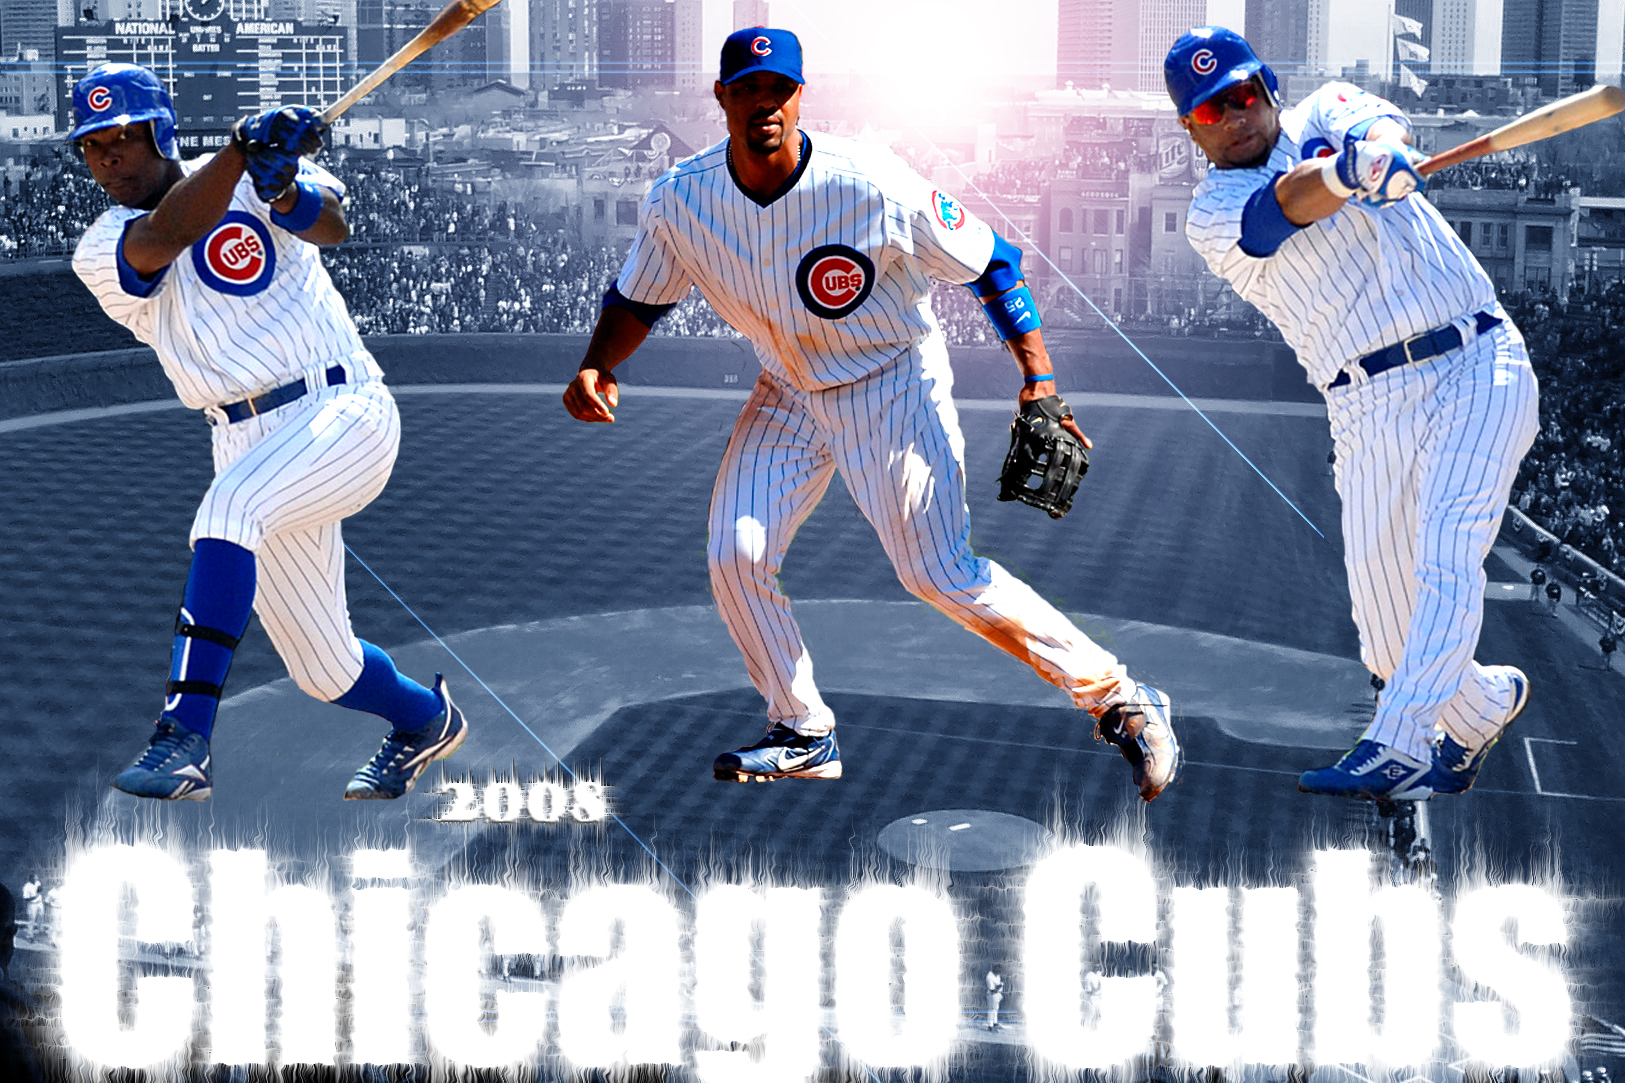 chicago cubs wallpapers Wallpaper and Screensaver 1625x1083